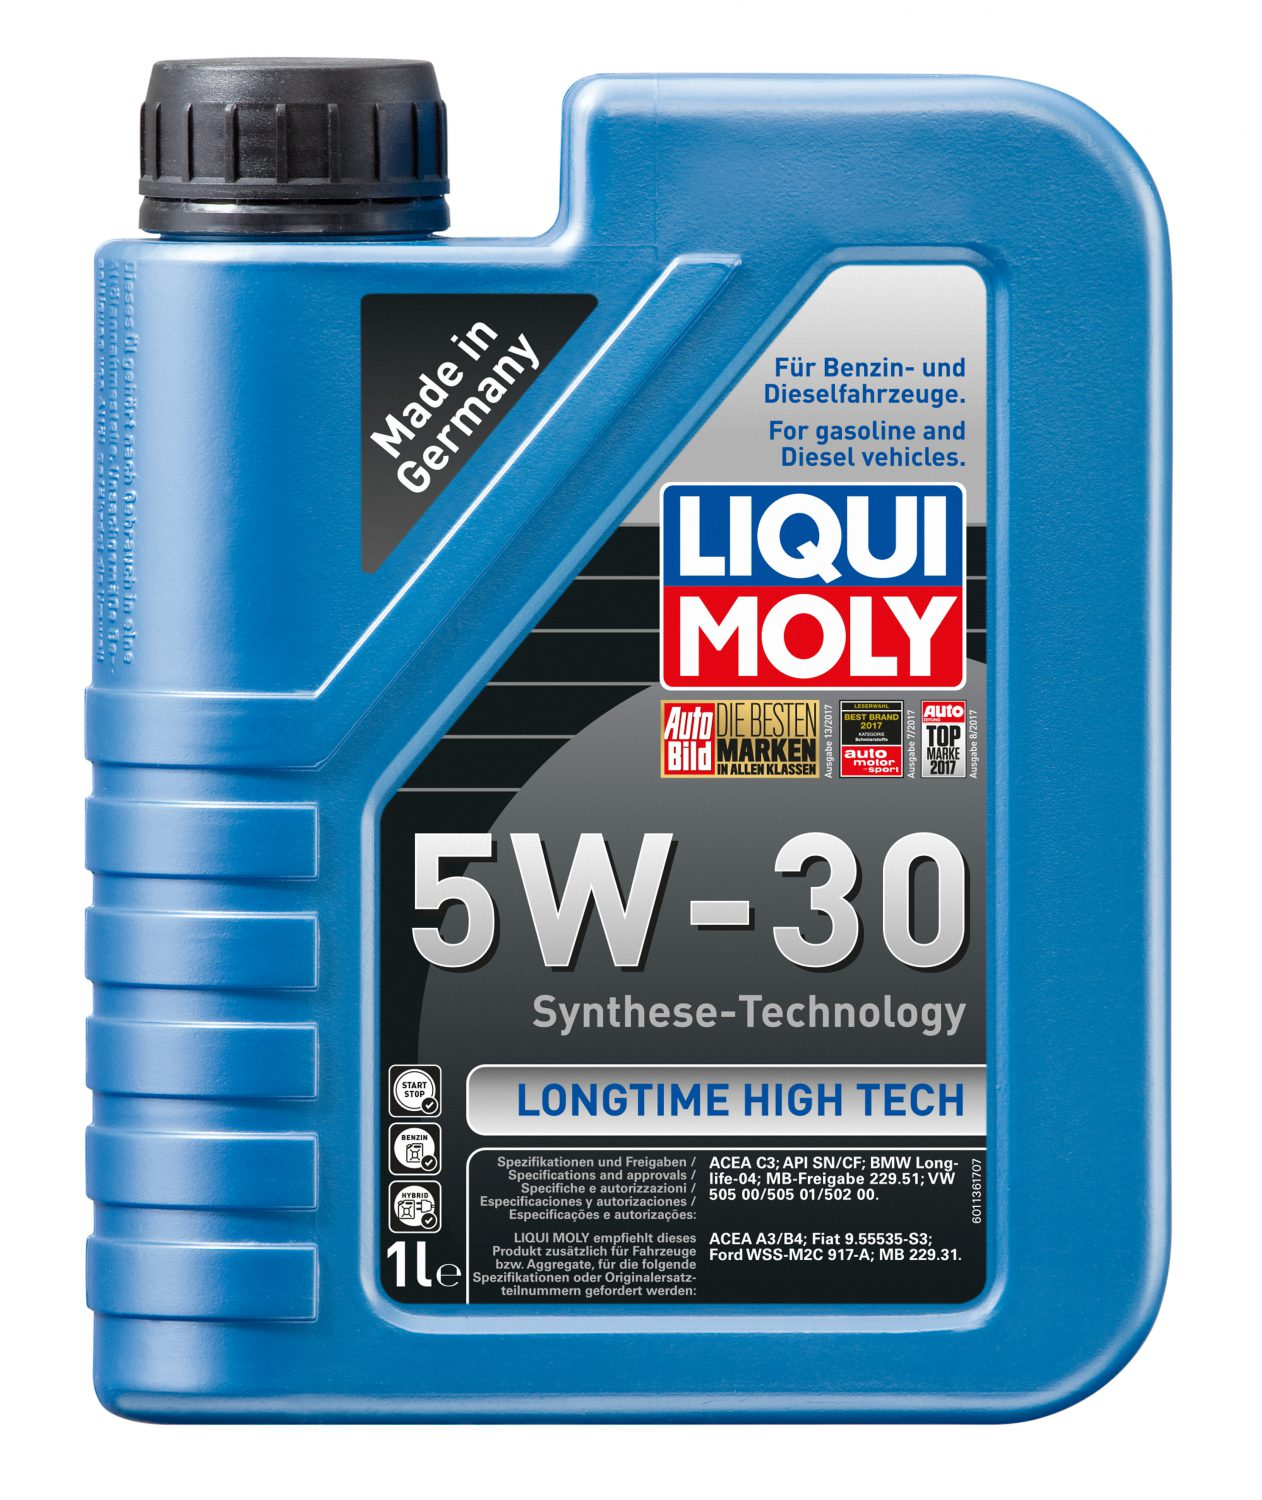 Liqui Moly photos